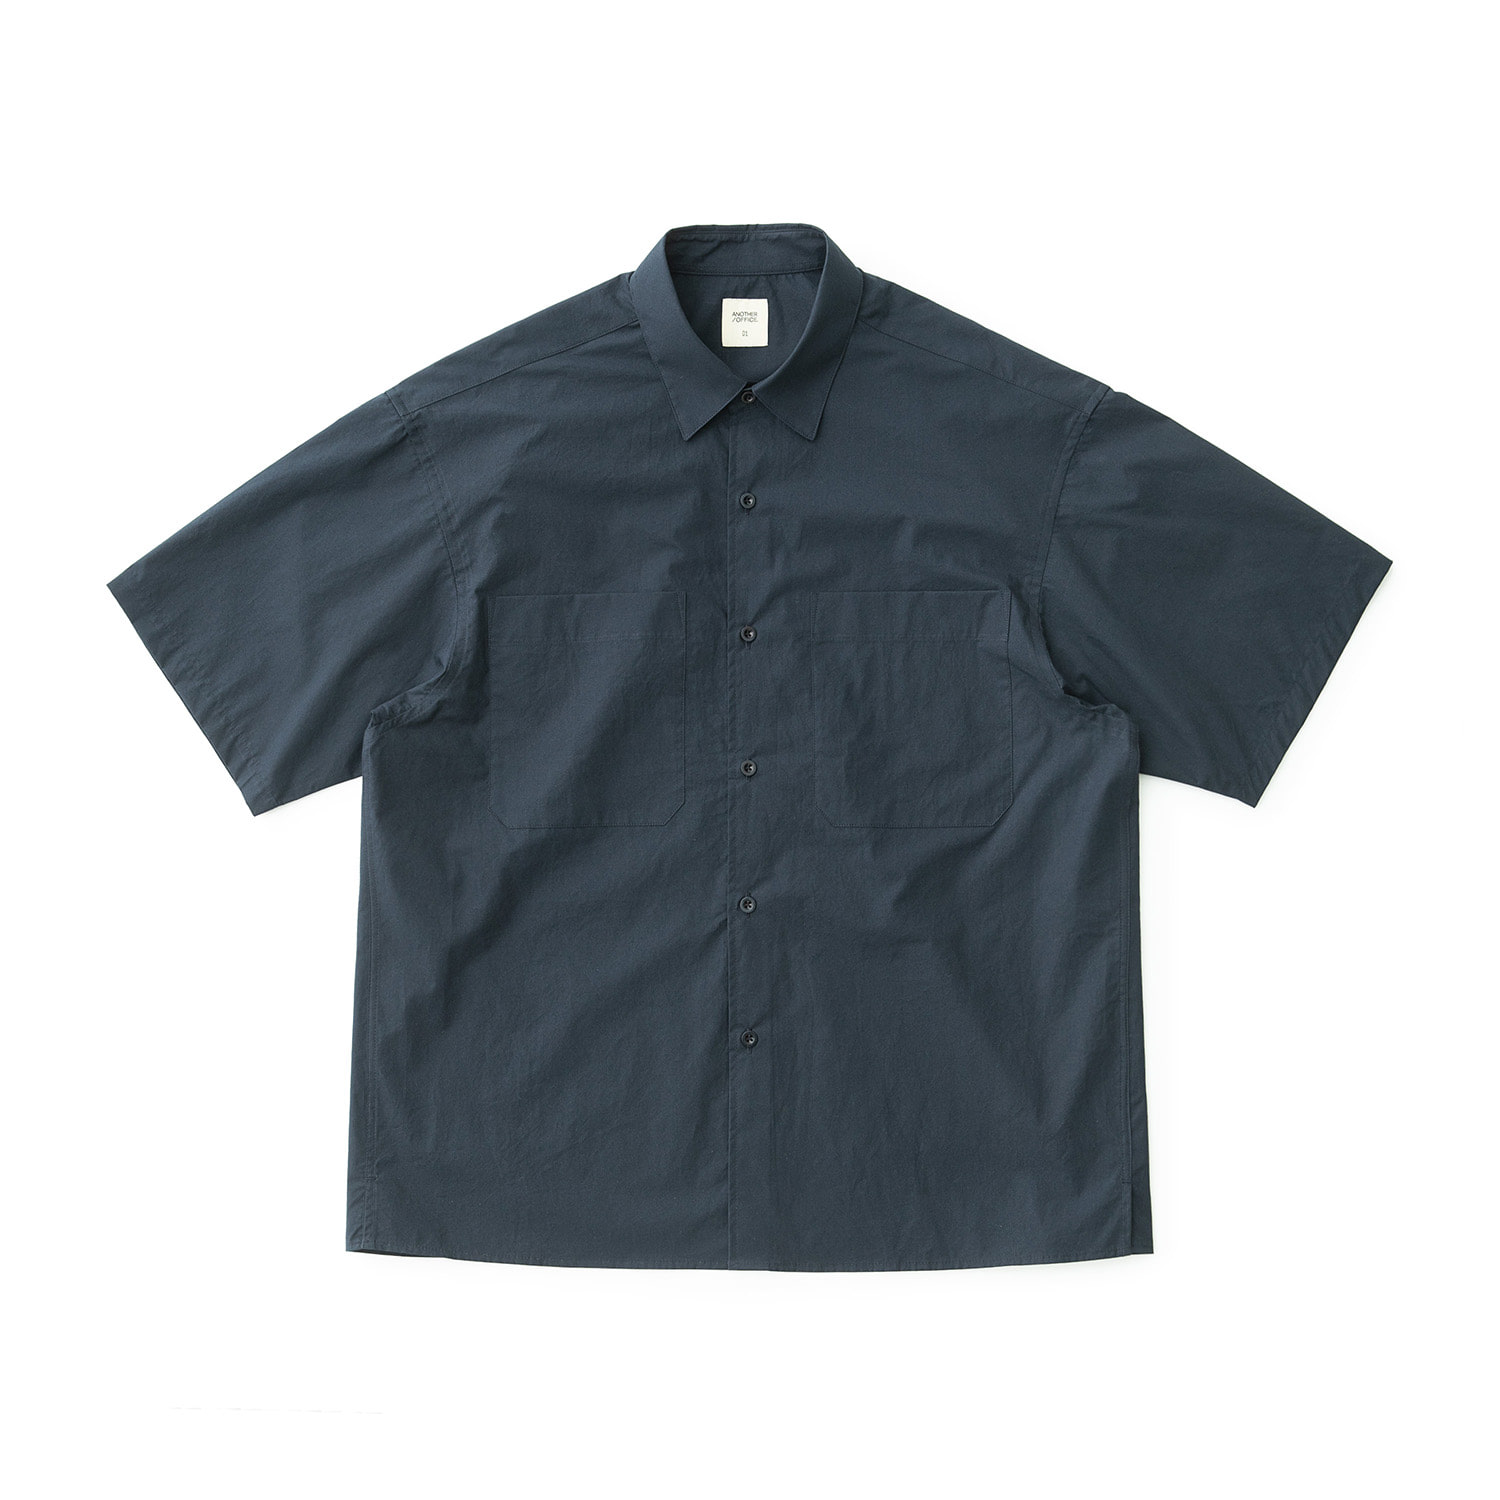 [재입고] Writer Shirt (Dark Navy)